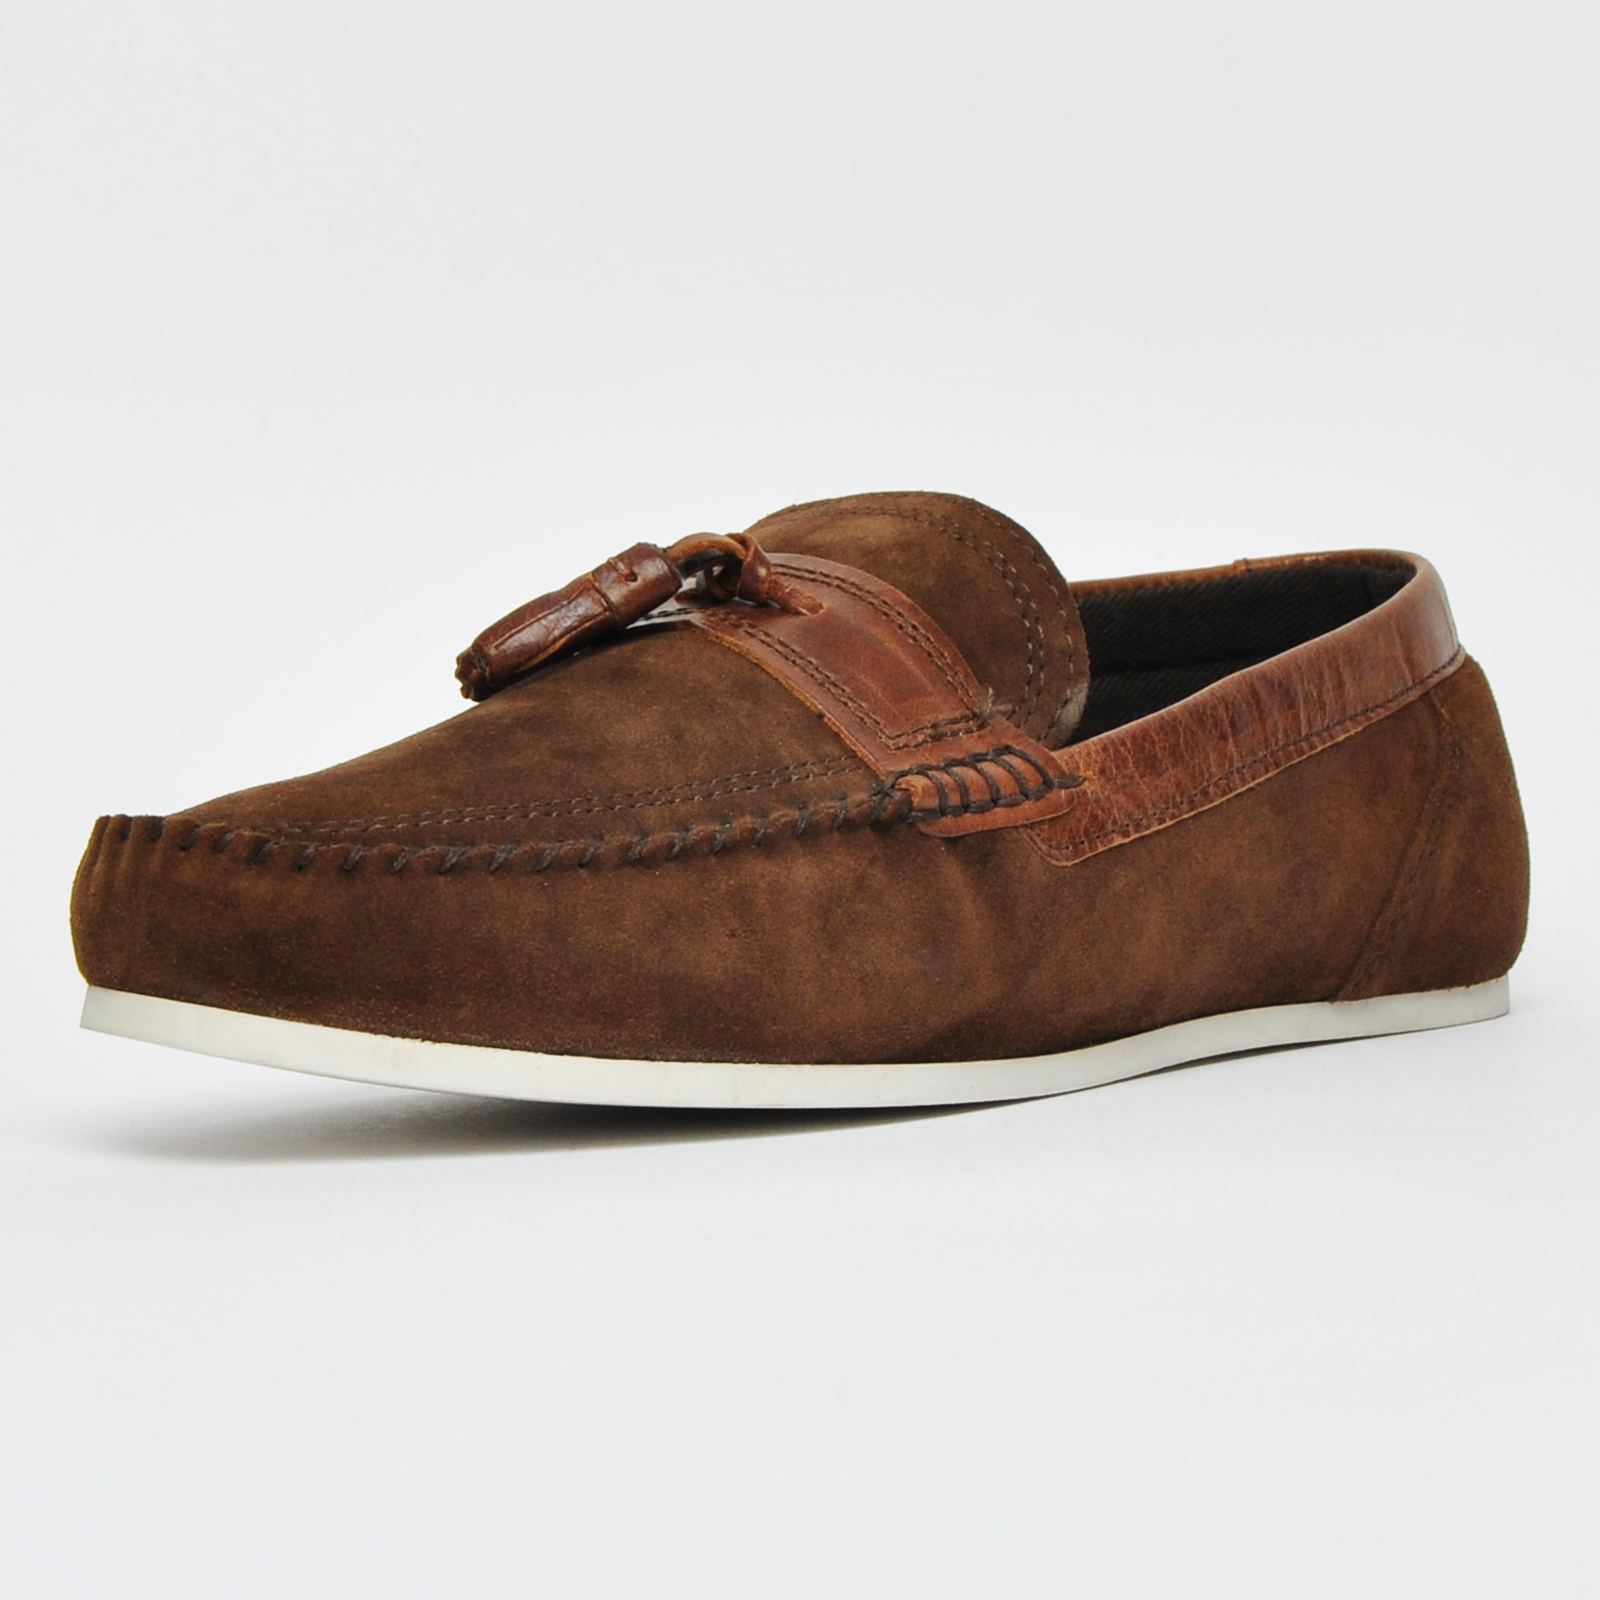 d6d2d6f2347 Details about Red Tape Houghton Mens Suede Leather Slip On Designer Loafers  Casual Shoes Brown